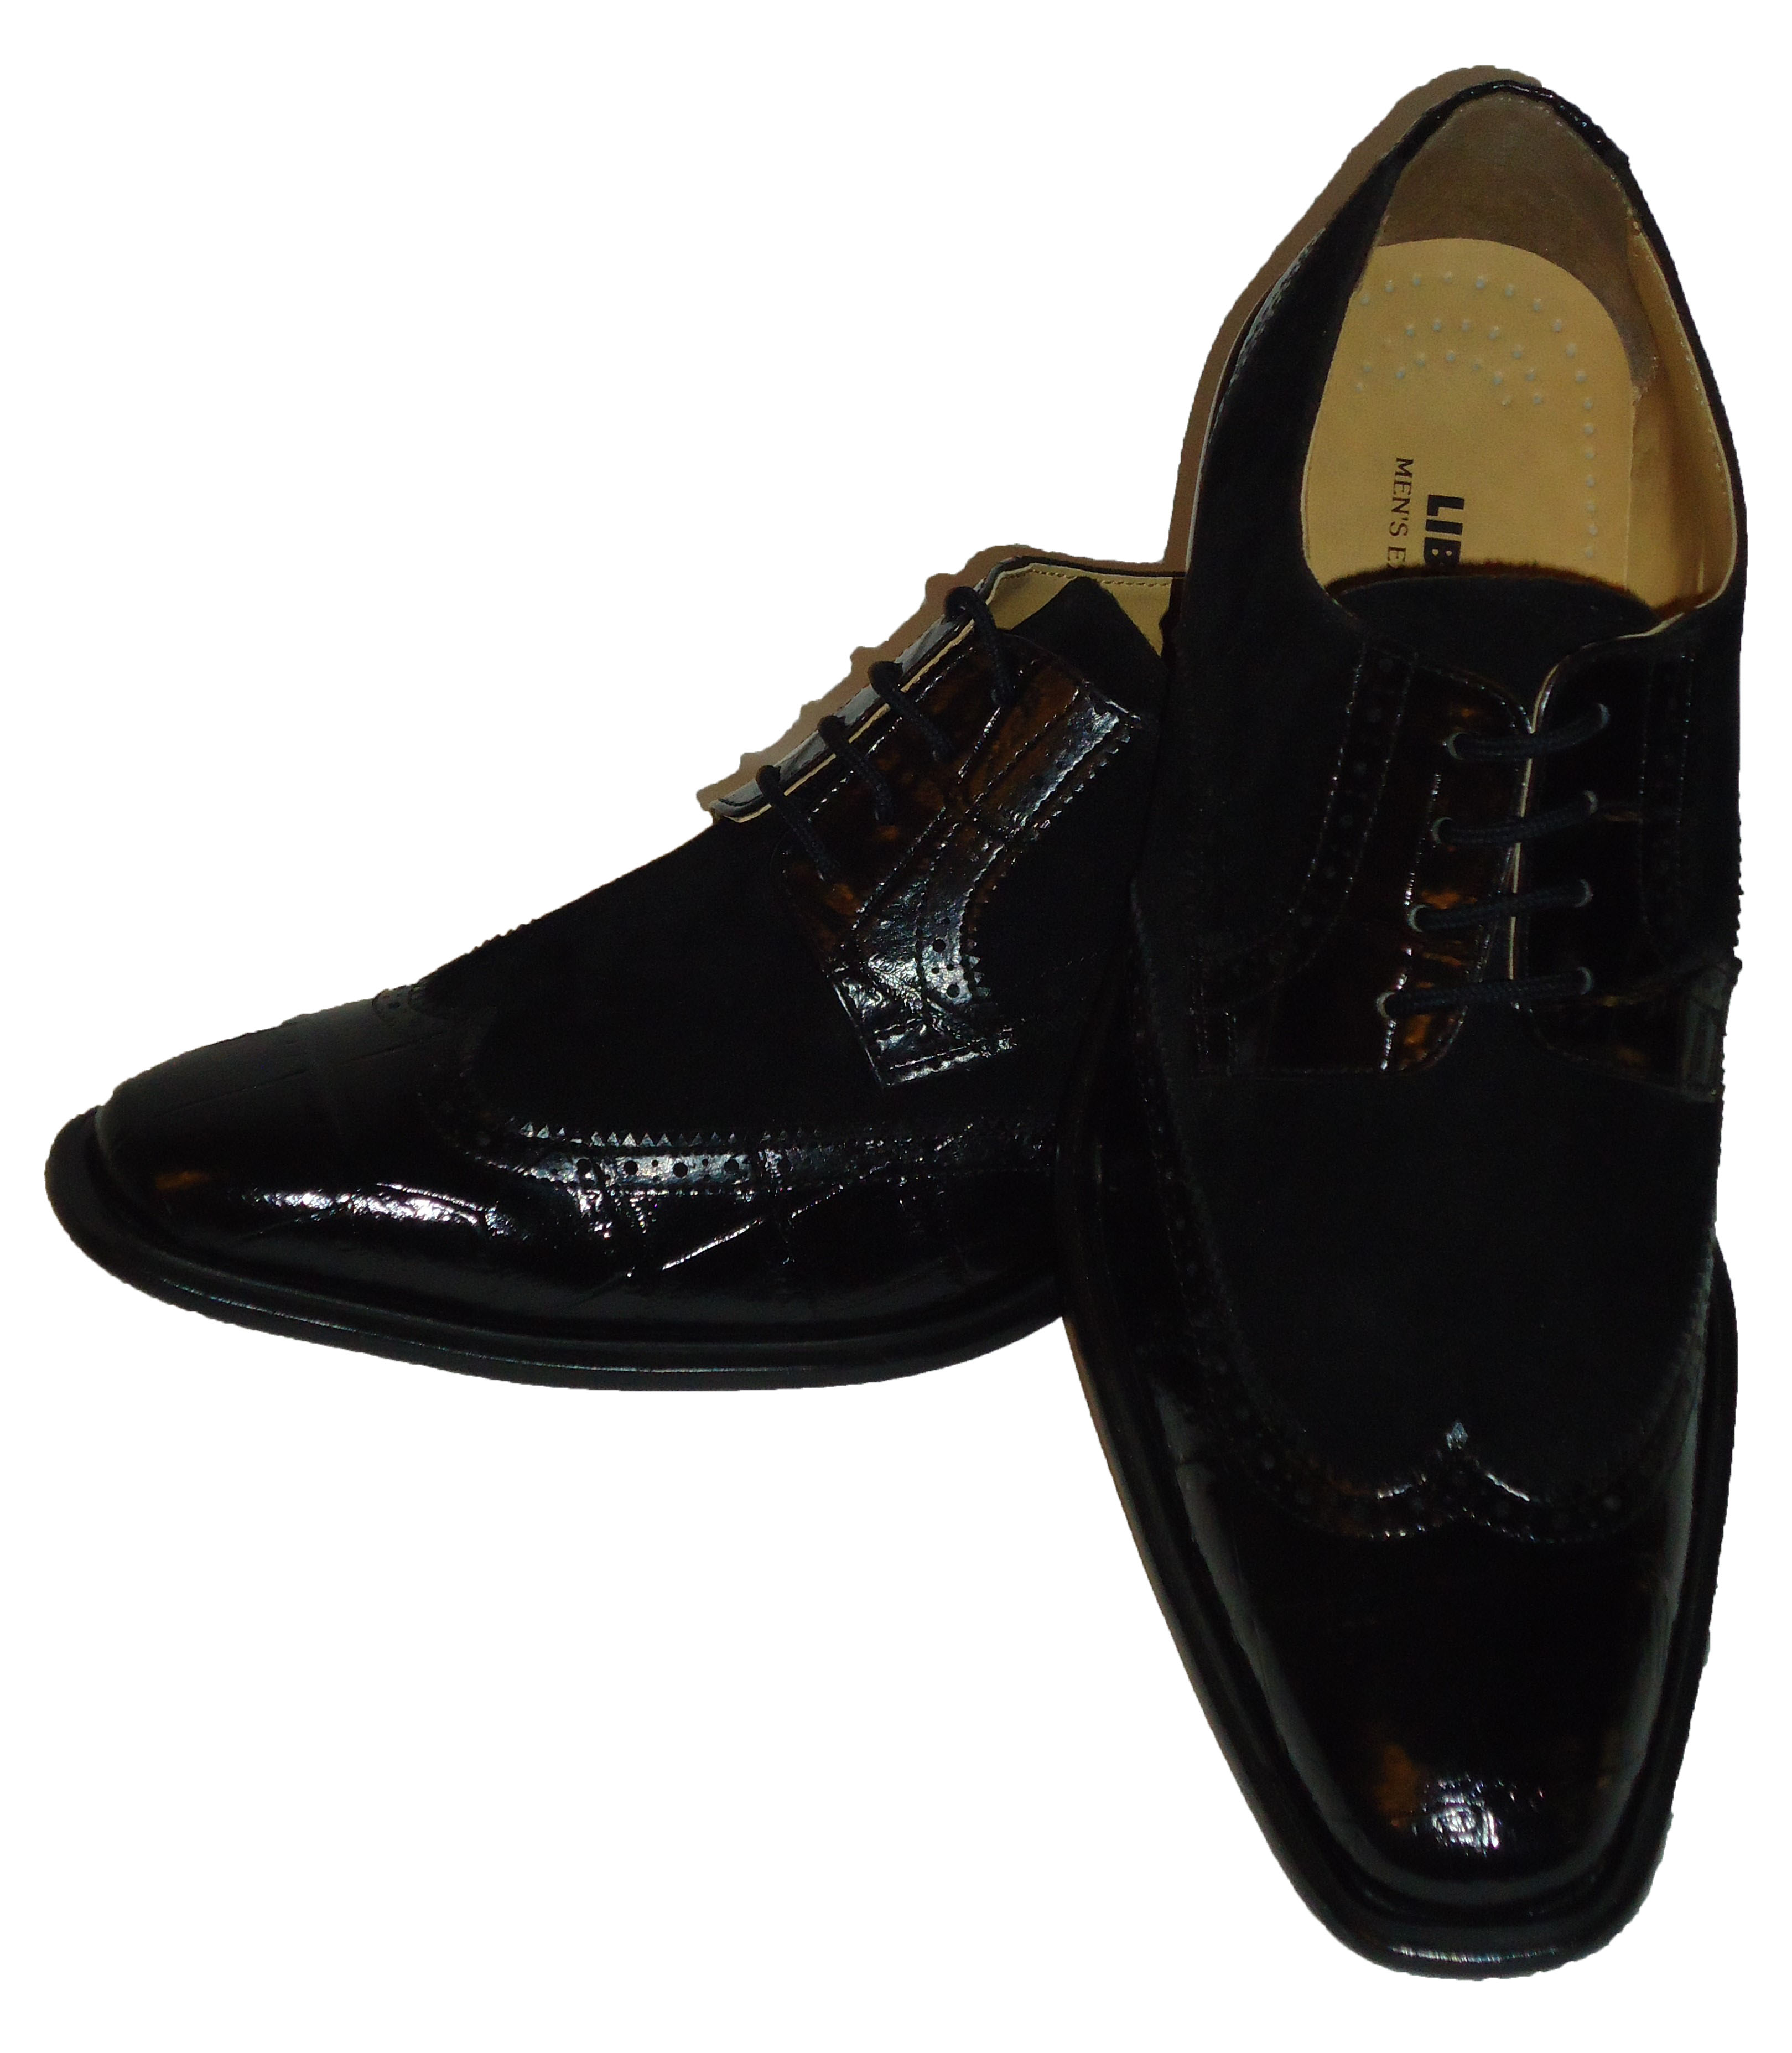 Mens Elegant Black Suede Look Two Tone Wing Tip Dress Shoes Liberty LS747 Size 9